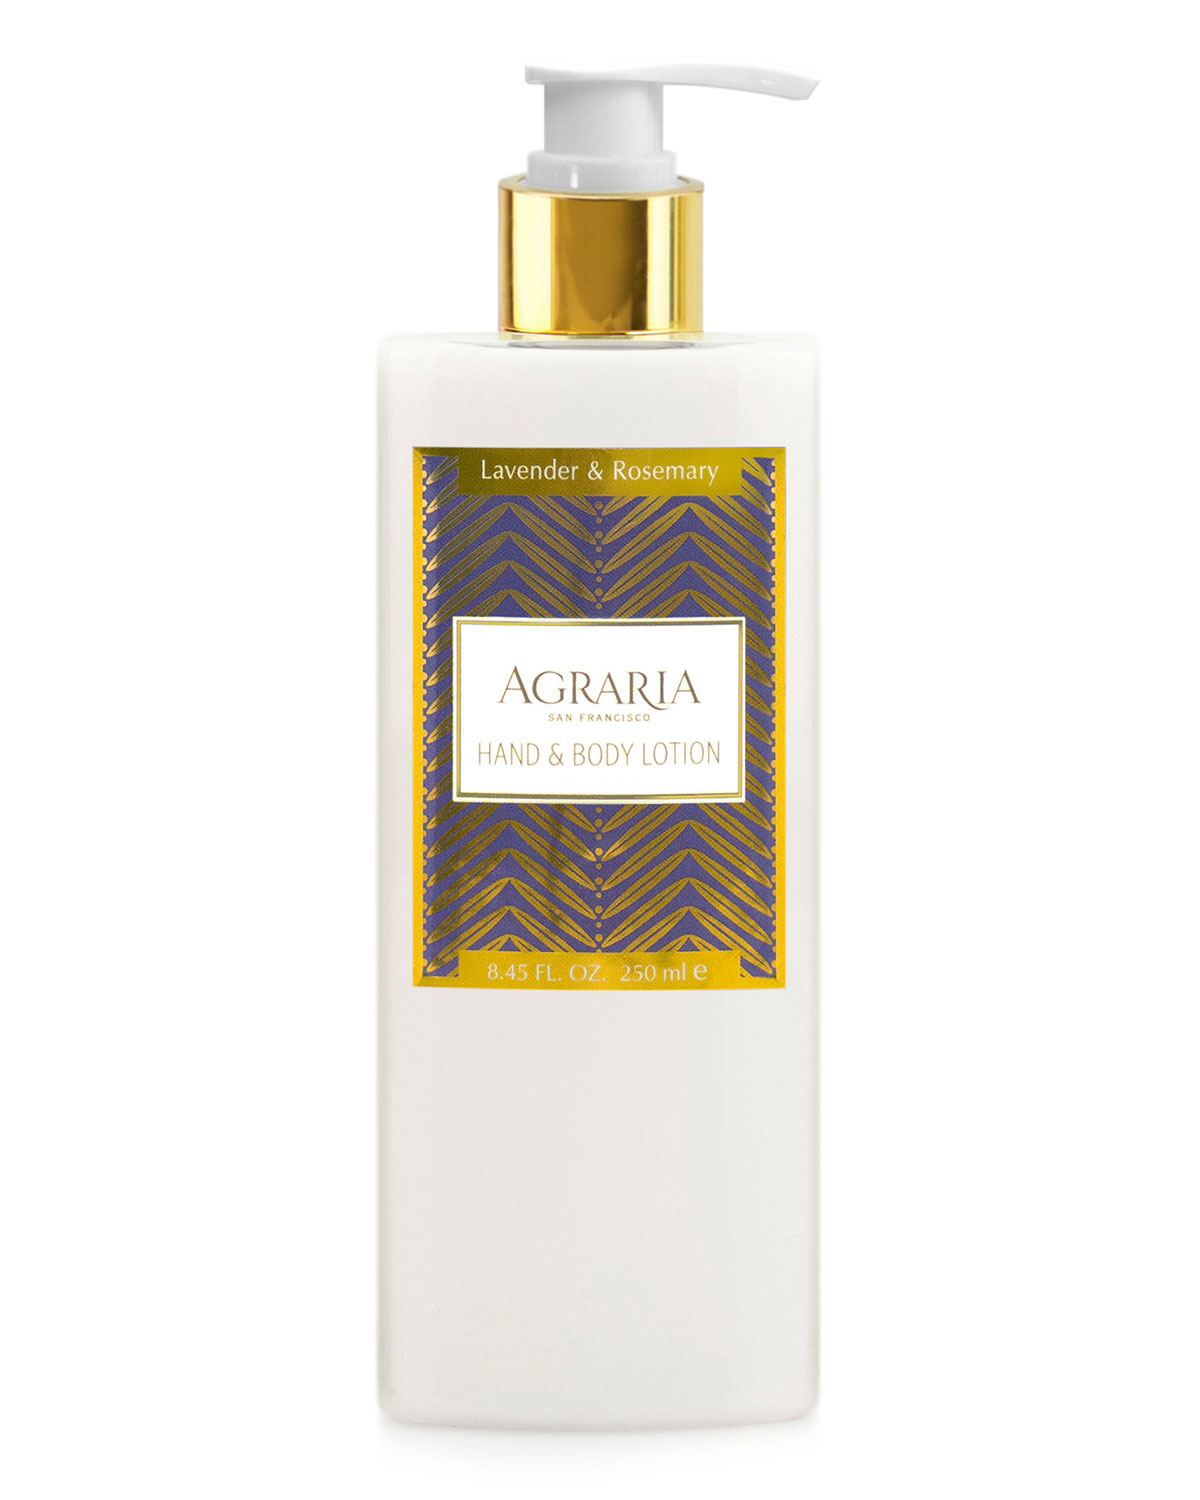 Lavender Rosemary Hand & Body Lotion   Agraria   Lavender